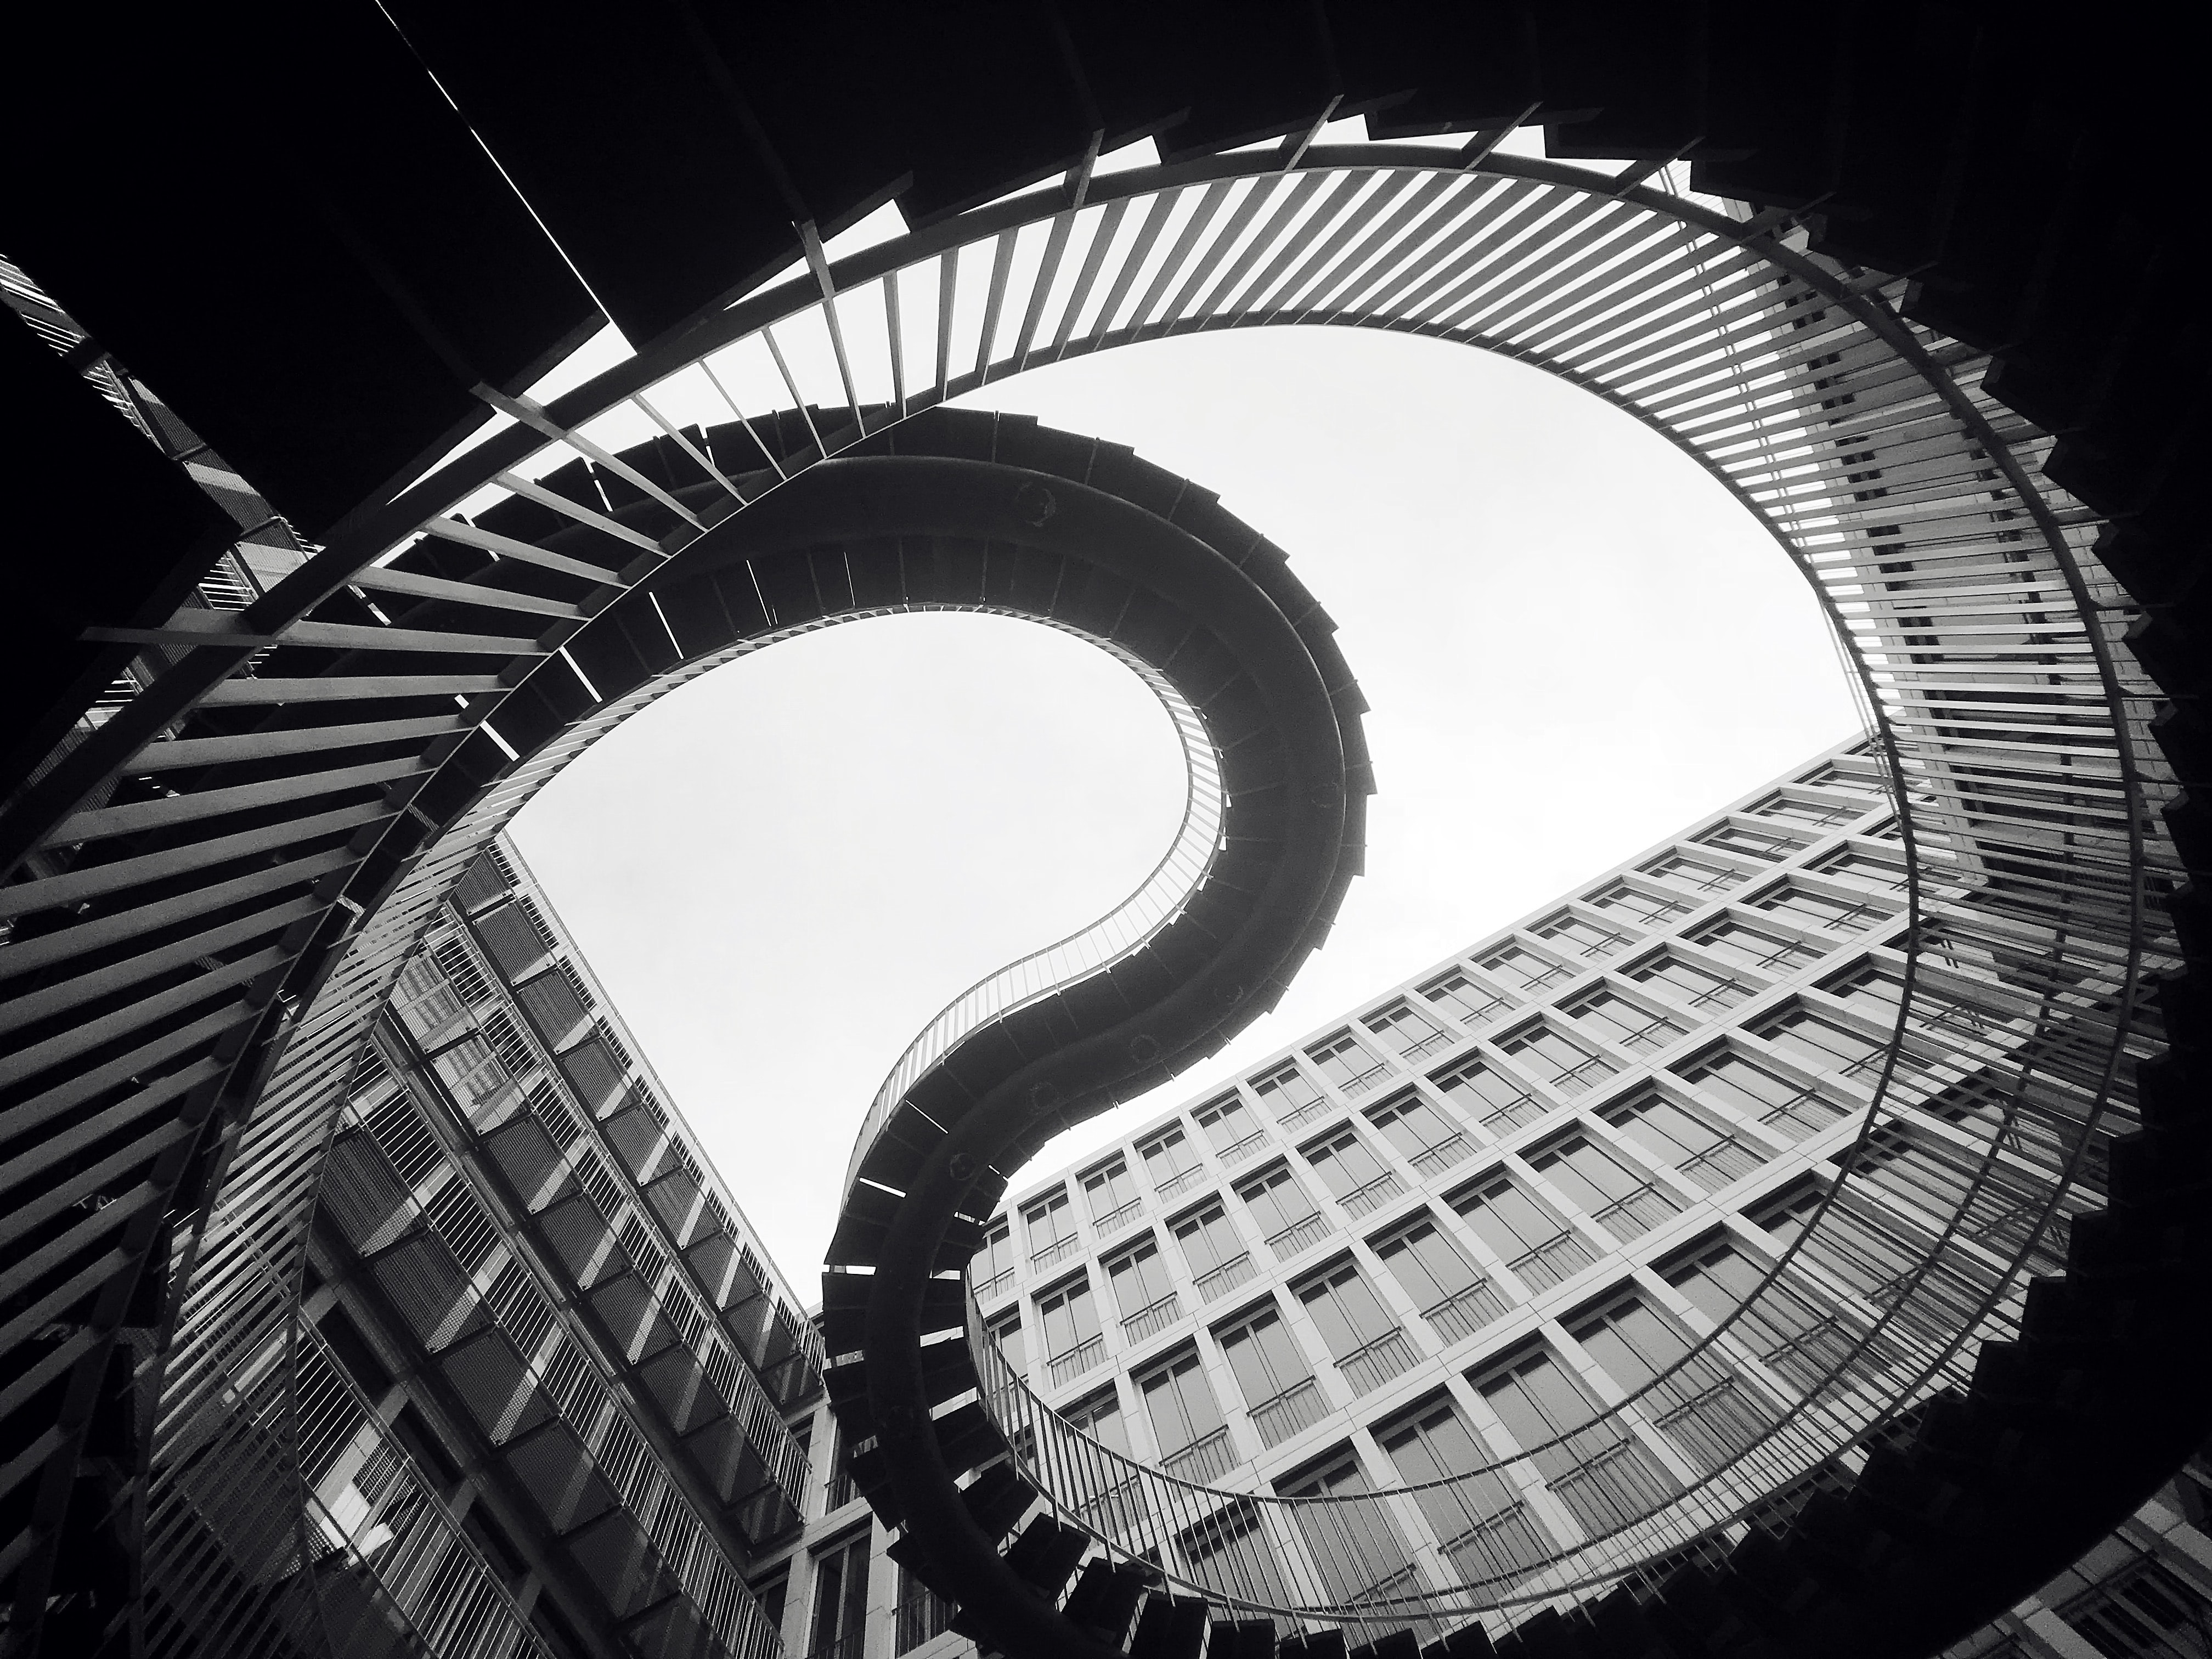 grascale photo of spiral stairs